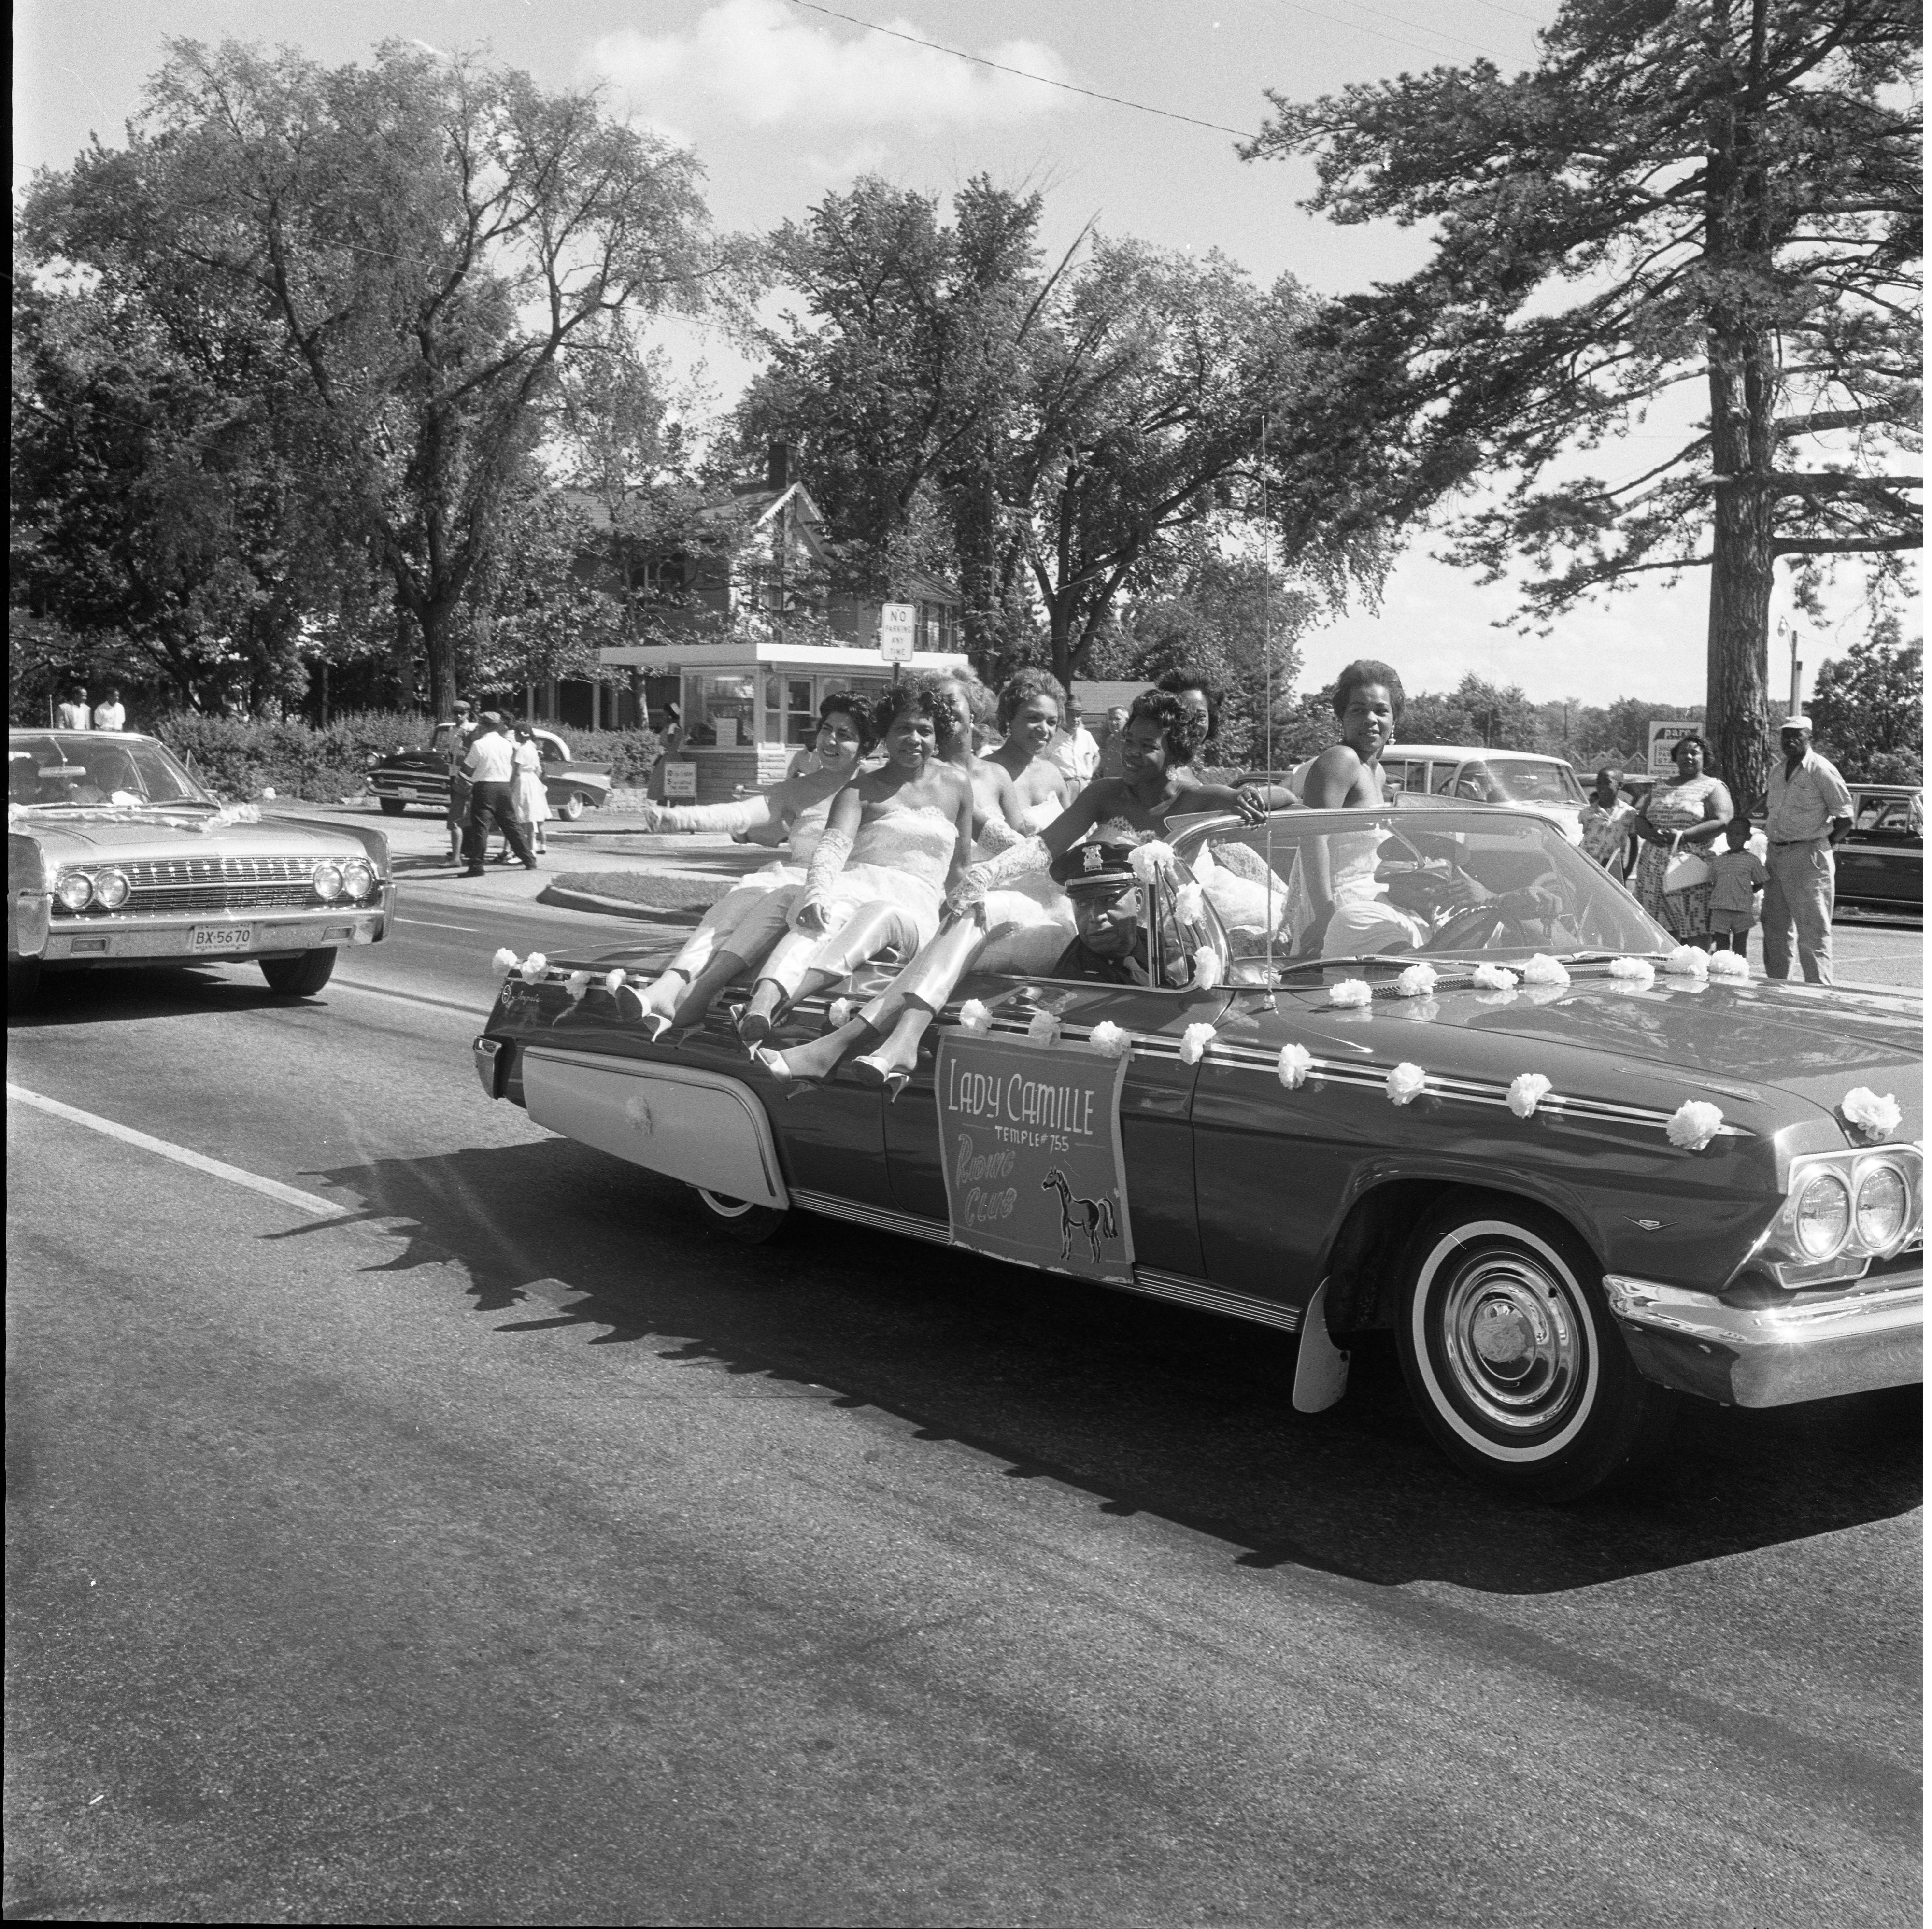 Lady Camille Riding Club, Temple No. 755 Riding In Car For The 26th Annual Elks Convention Parade, June 25, 1962 image